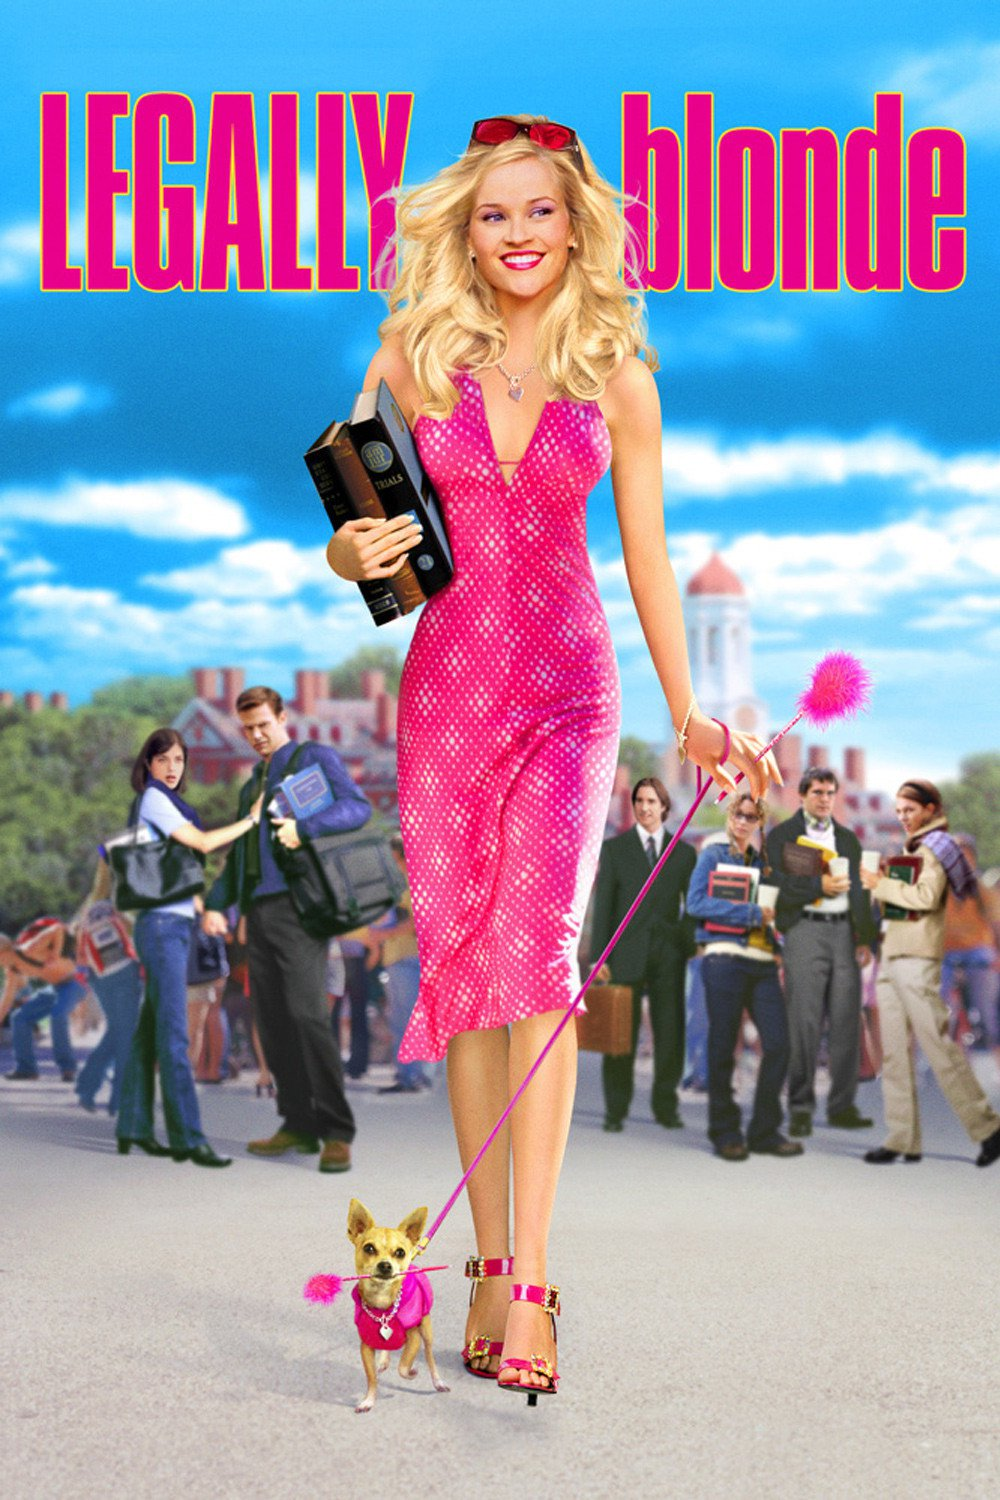 legally blonde Iconic Chick Flicks To Stream At Home With A Glass Of Wine